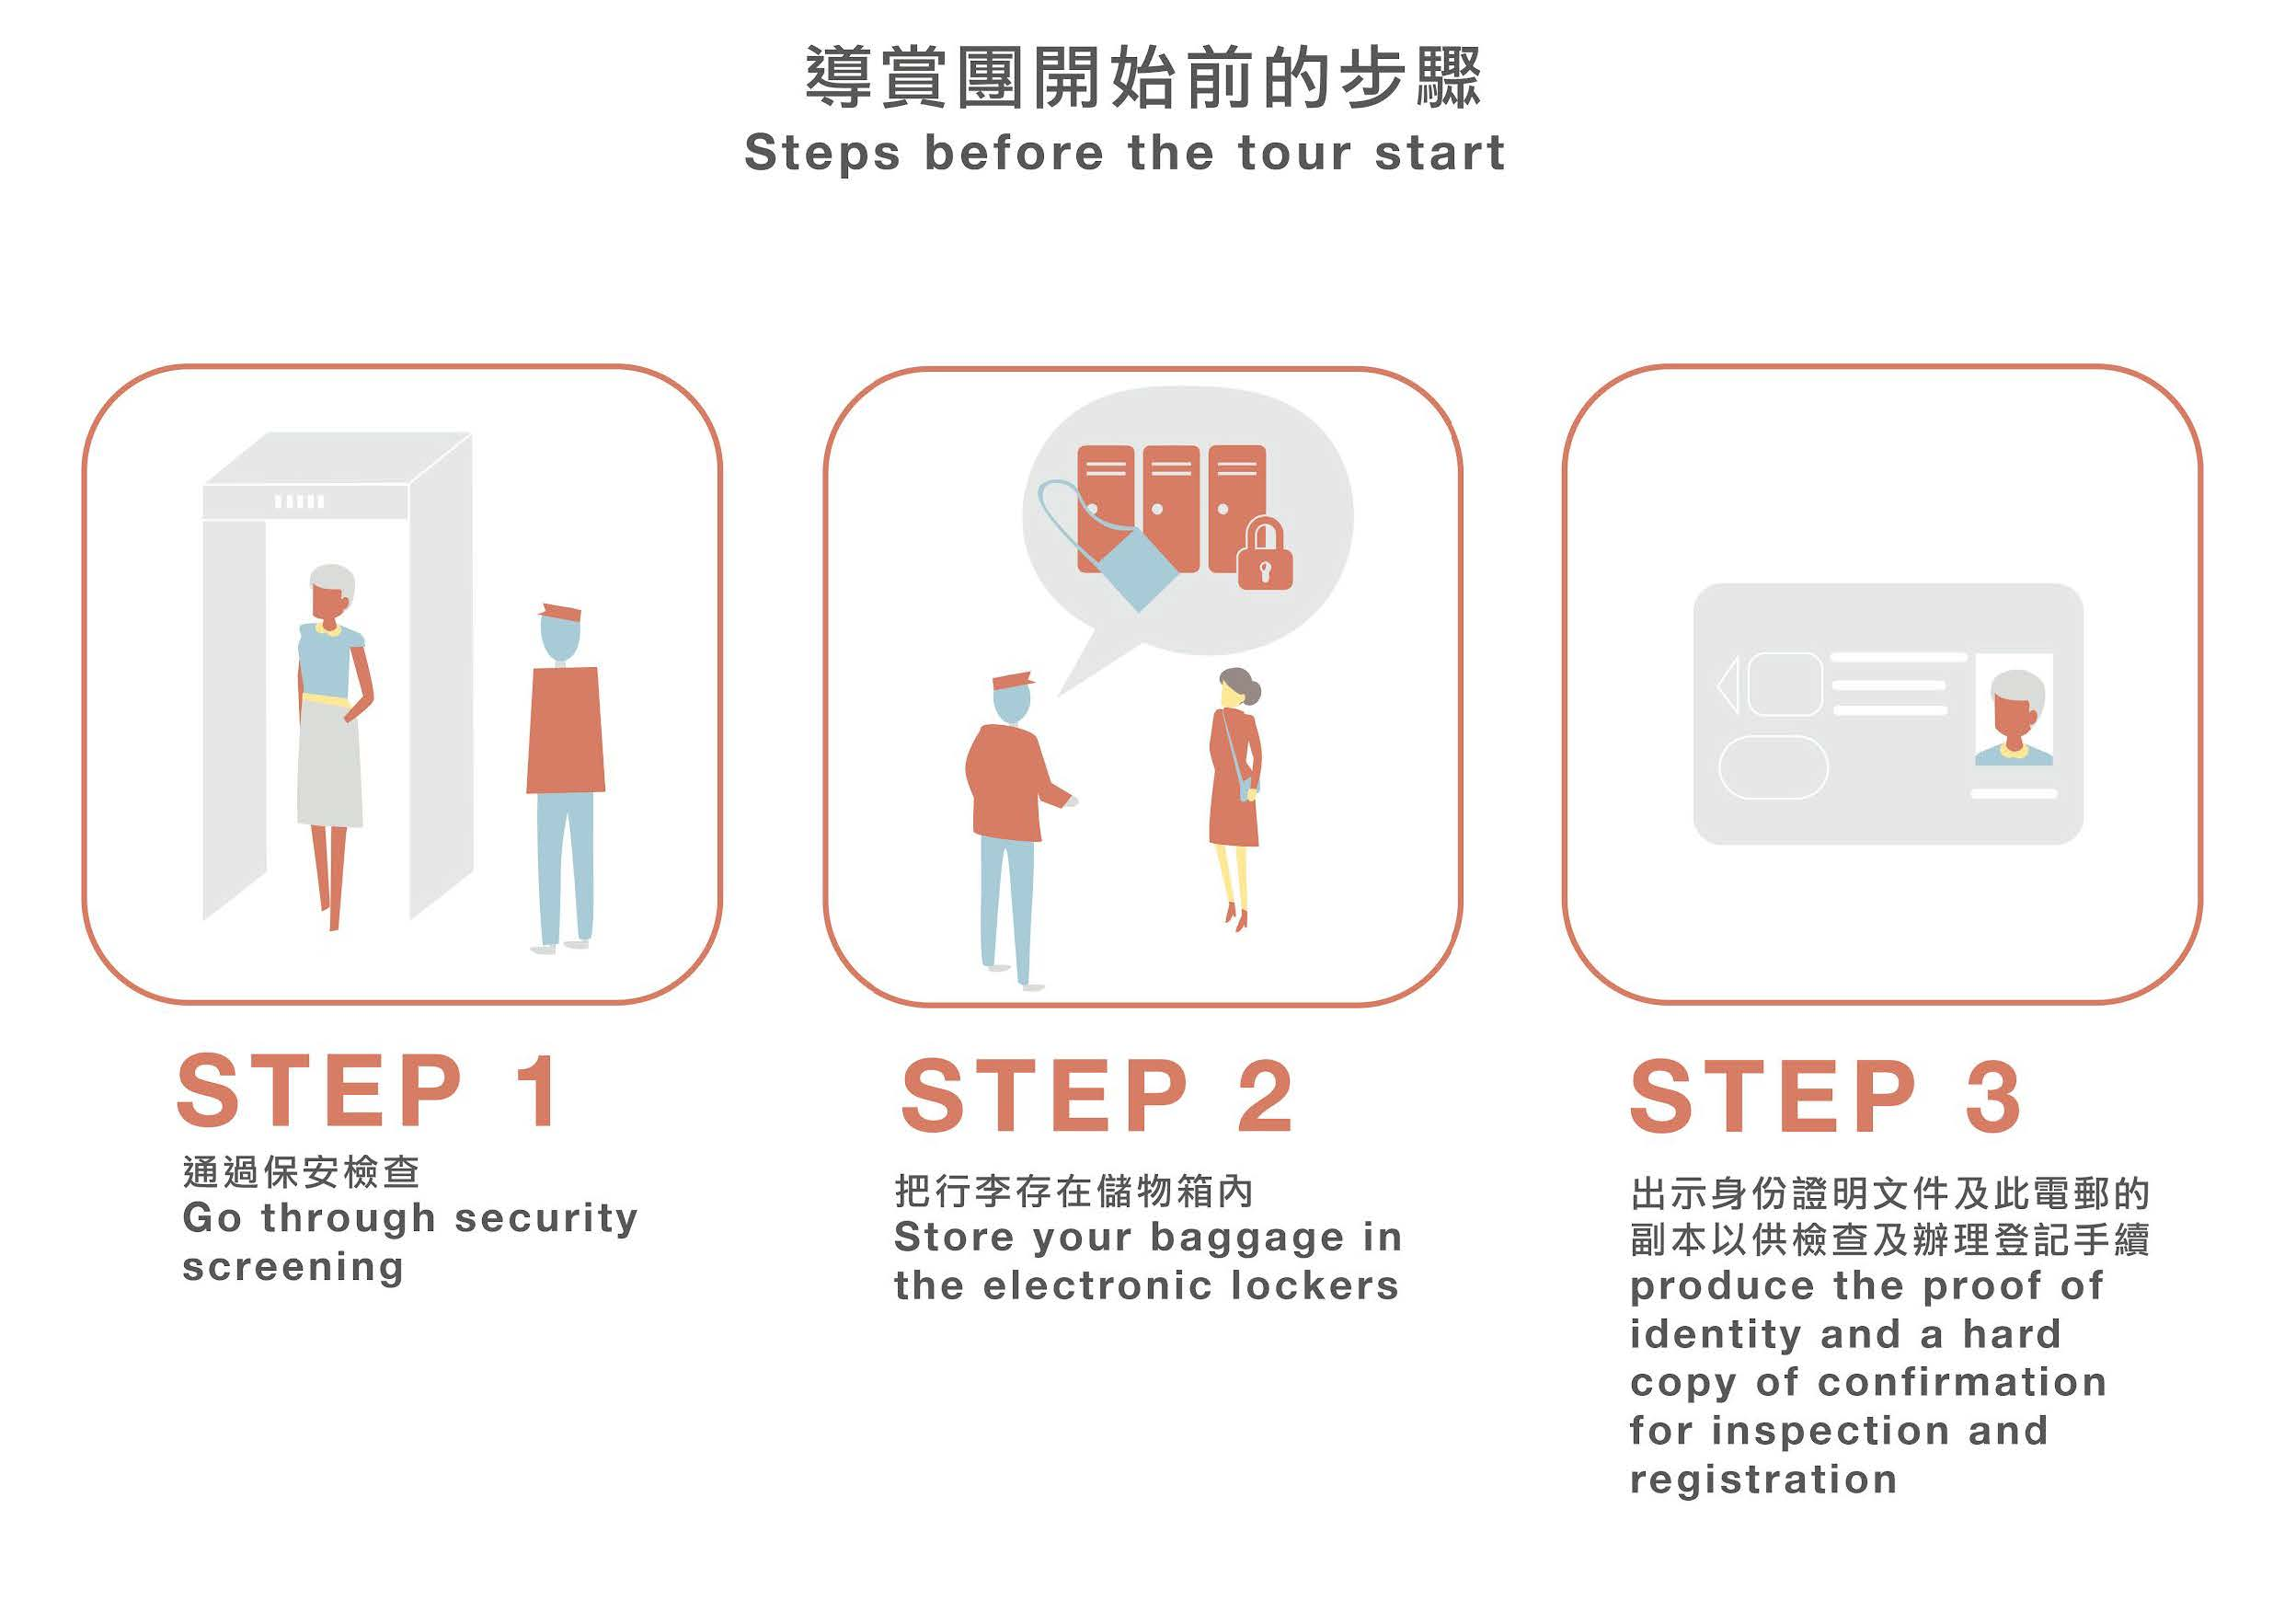 Enhancing Visitors' Experience at the LegCo Complex